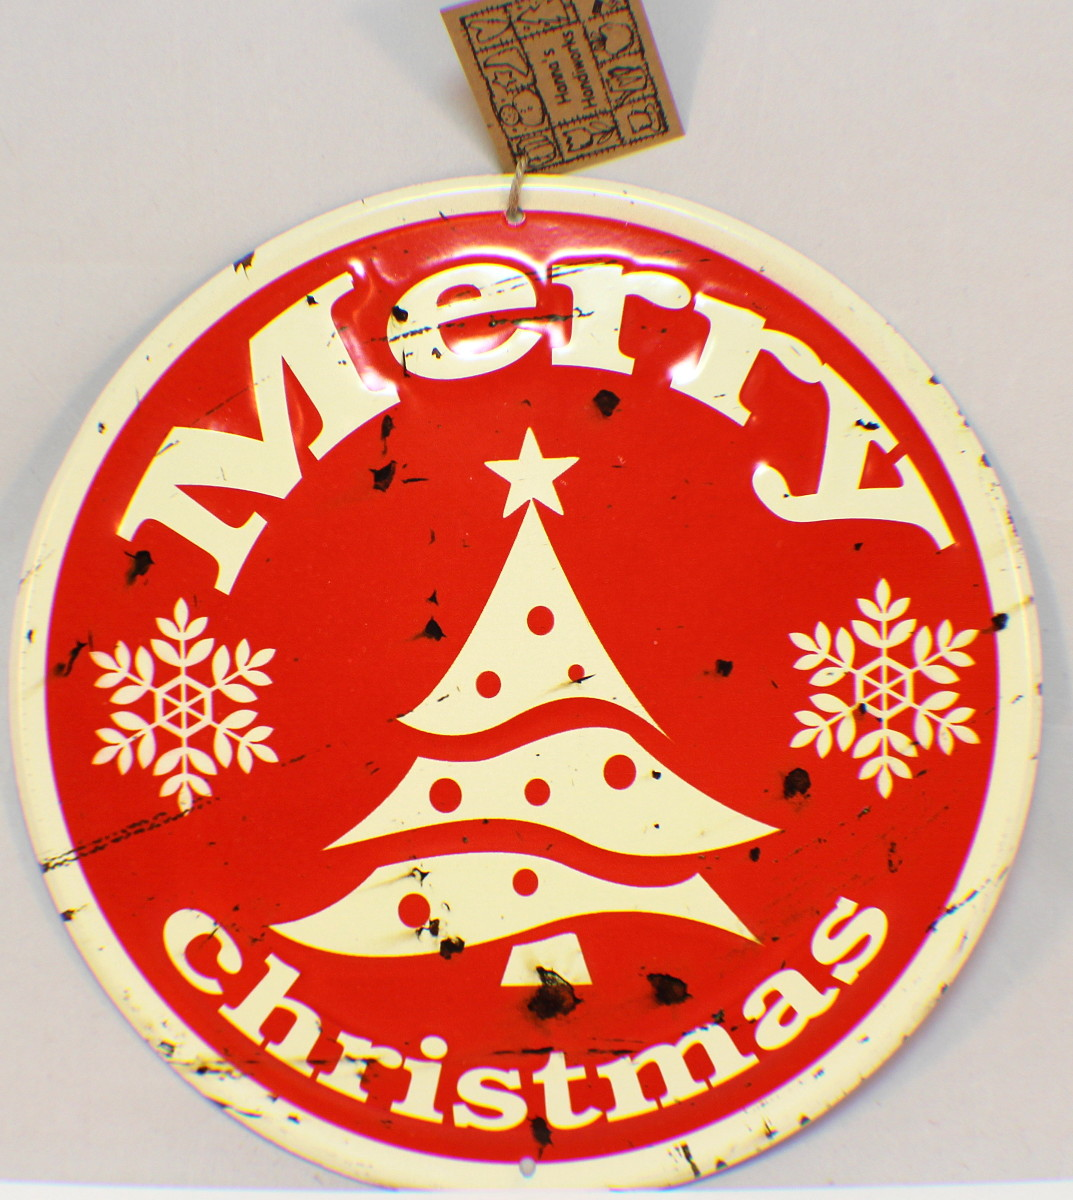 Merry Christmas Vintage Inspired Distressed Round Tree Decor Sign Santa Red